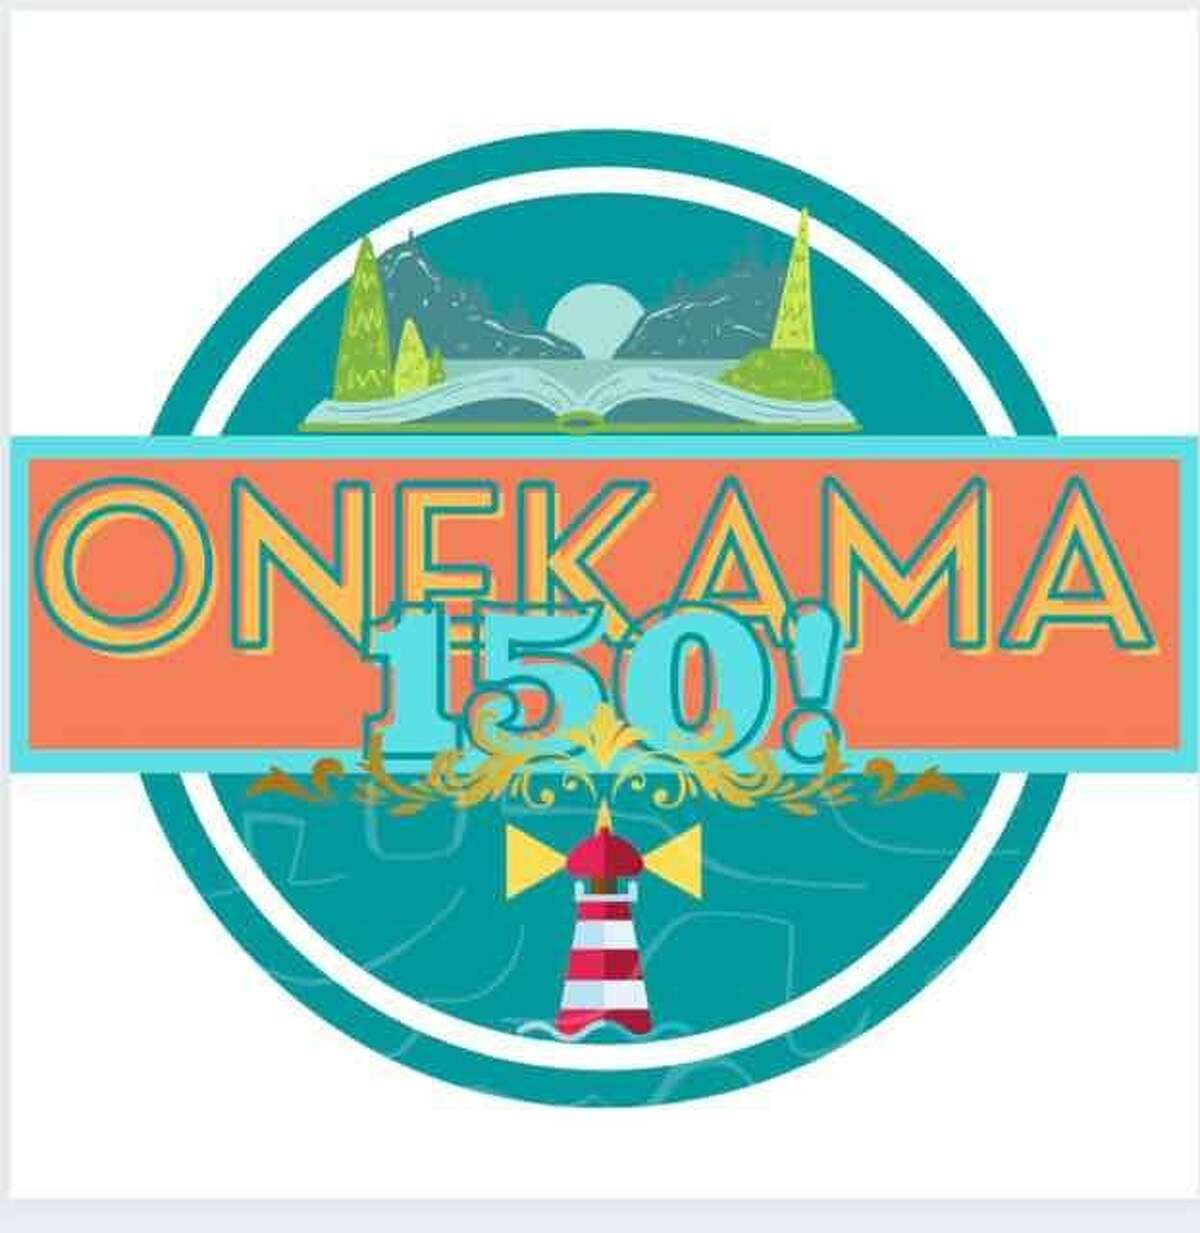 The grand prize winner of the logo contest was Onekama High School student Karmen Warden.